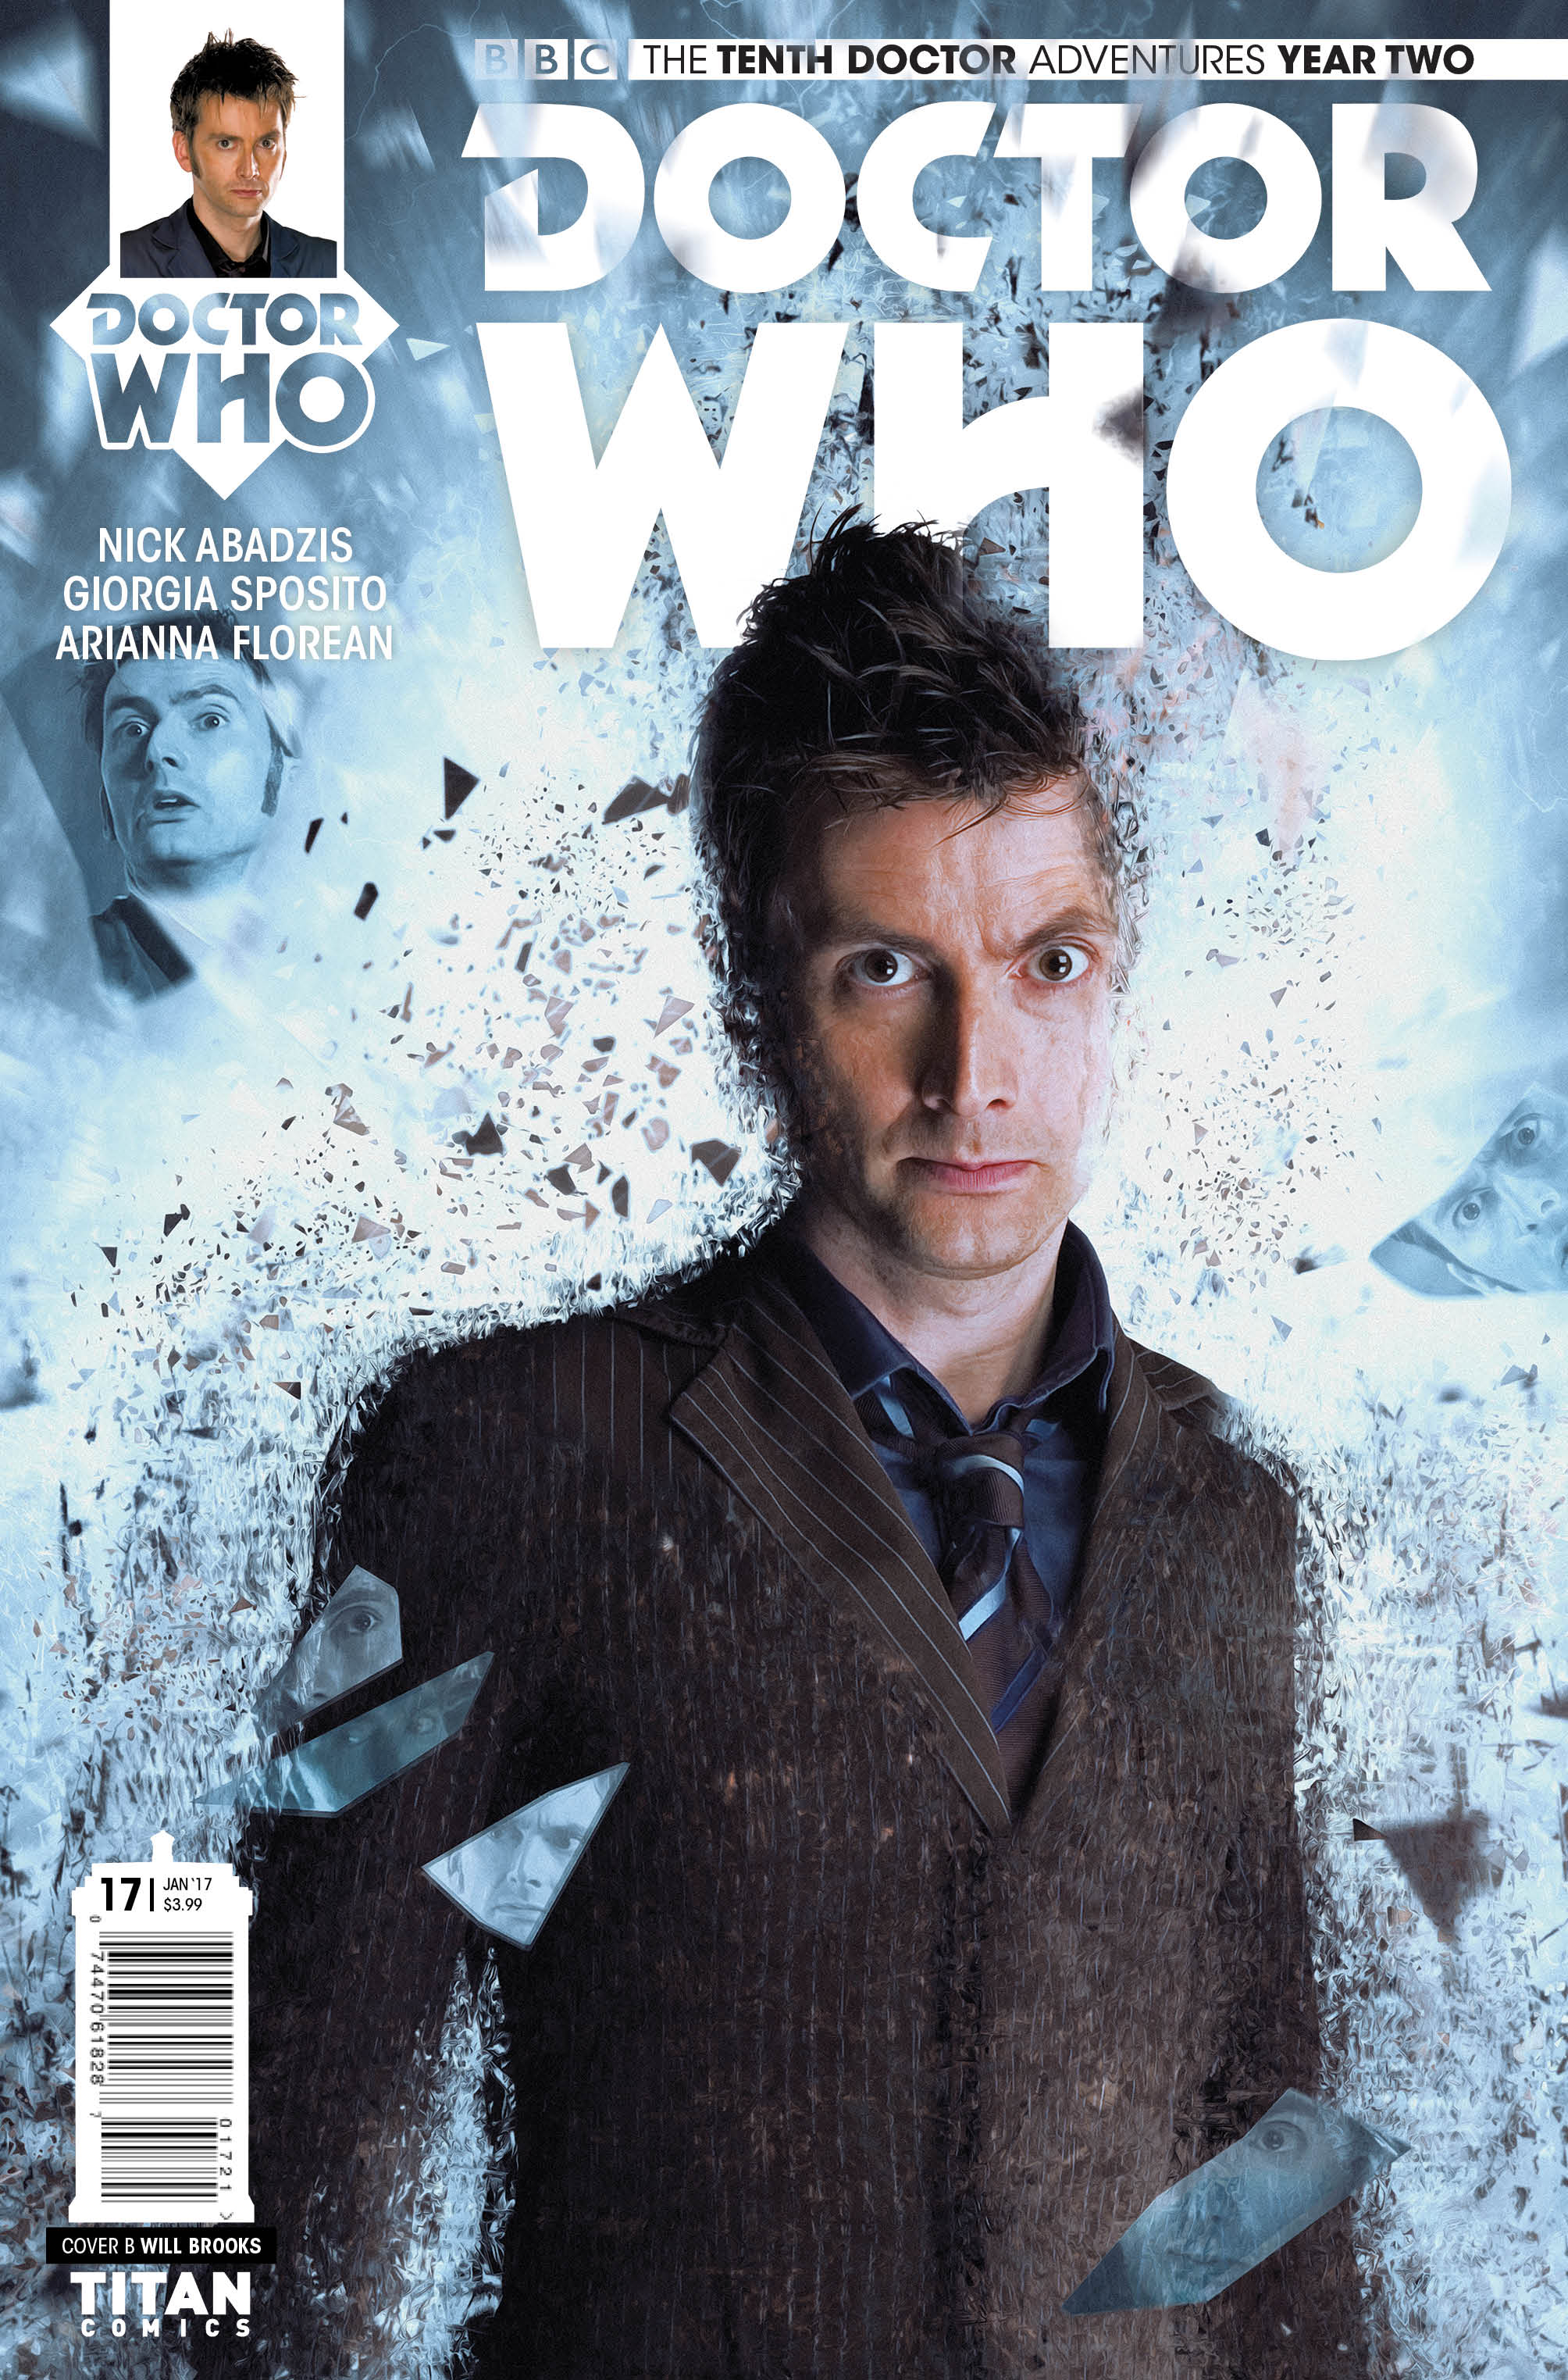 TENTH DOCTOR #2.17 Cover_B_Will_Brooks (Credit: Titan)